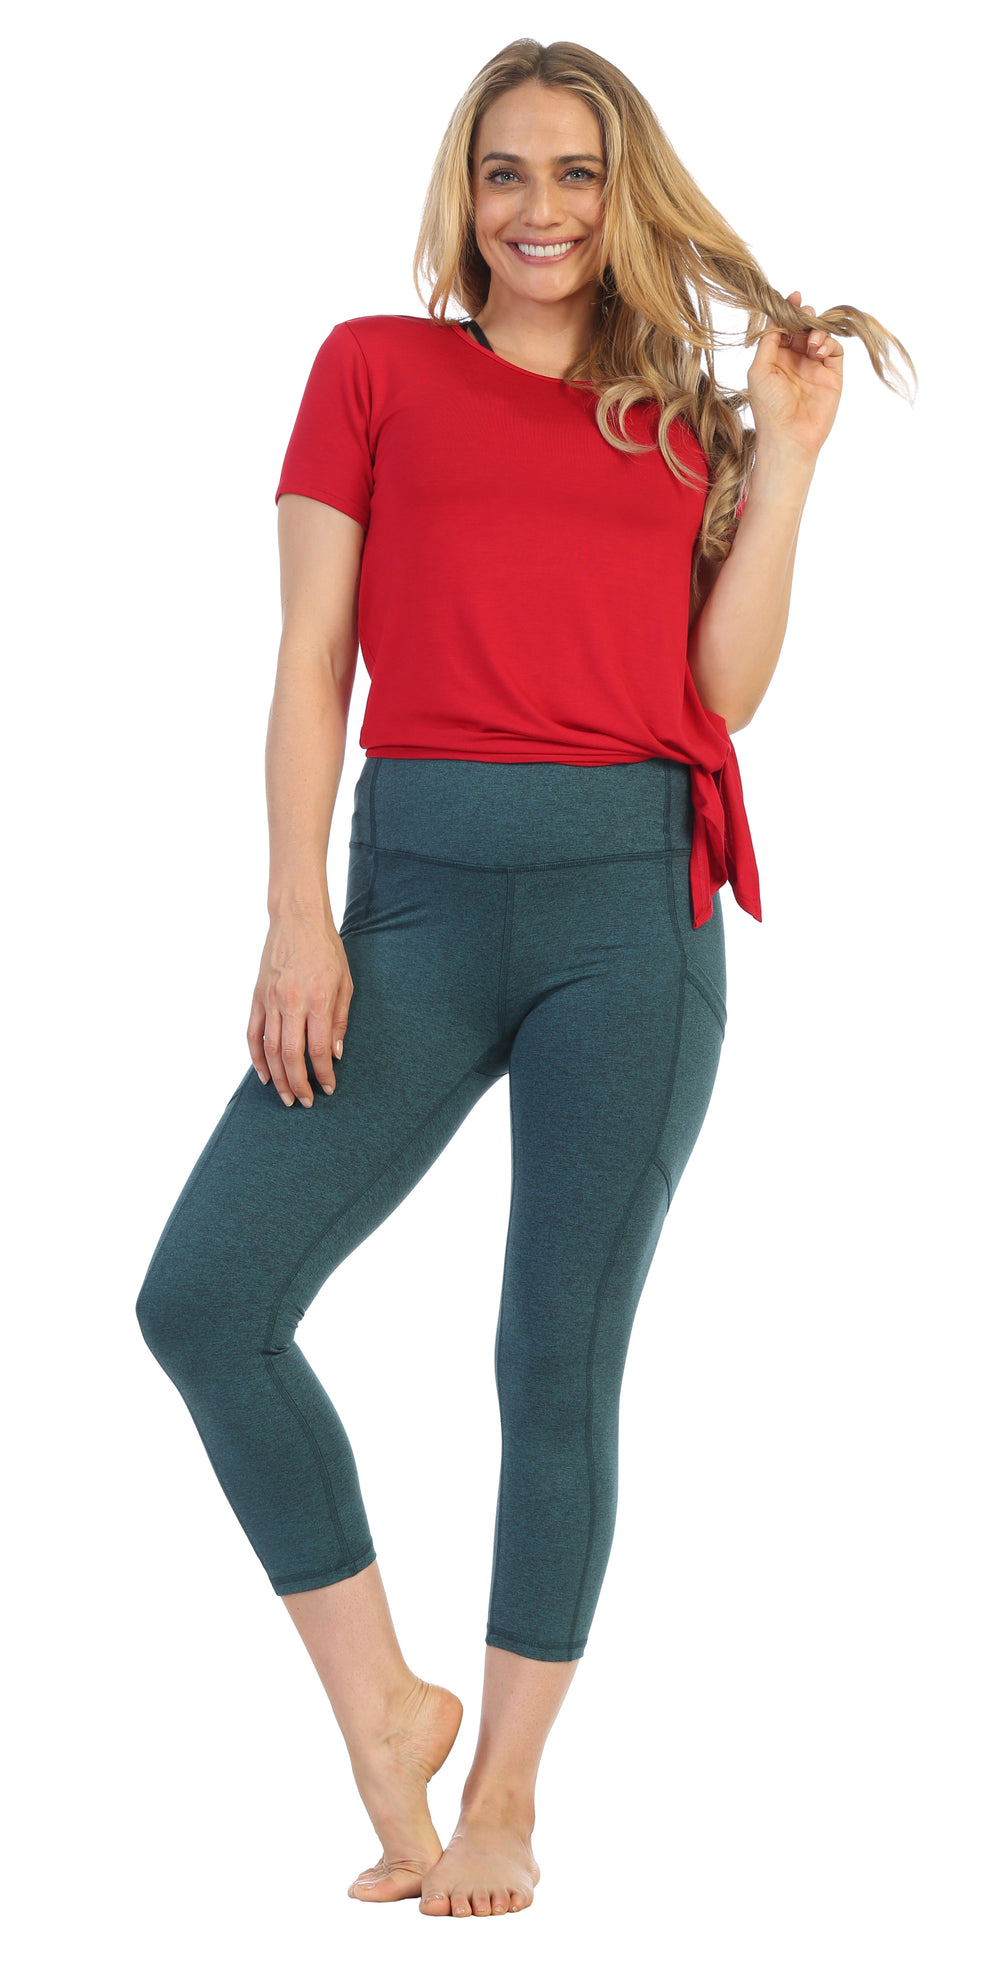 Teal-Heather Spacedye-High Waist-3-4 Length Pocket Leggings-lifestyle pose-red tee shirt